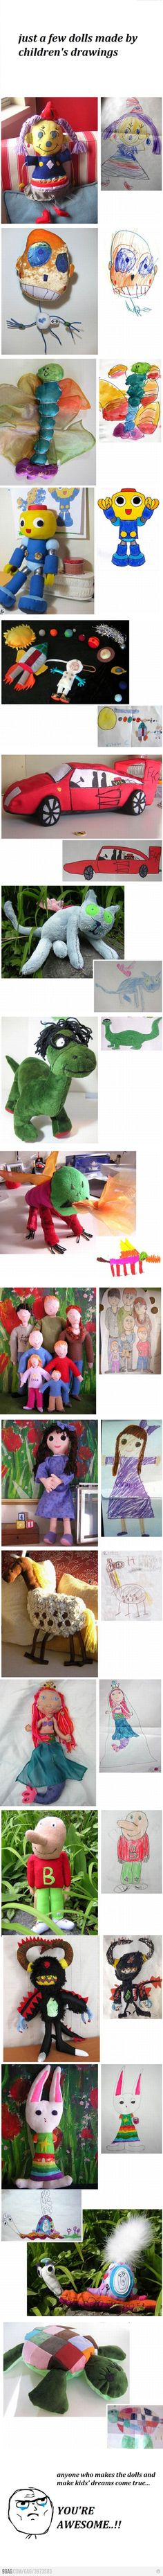 dolls made by children's drawings... awesome.